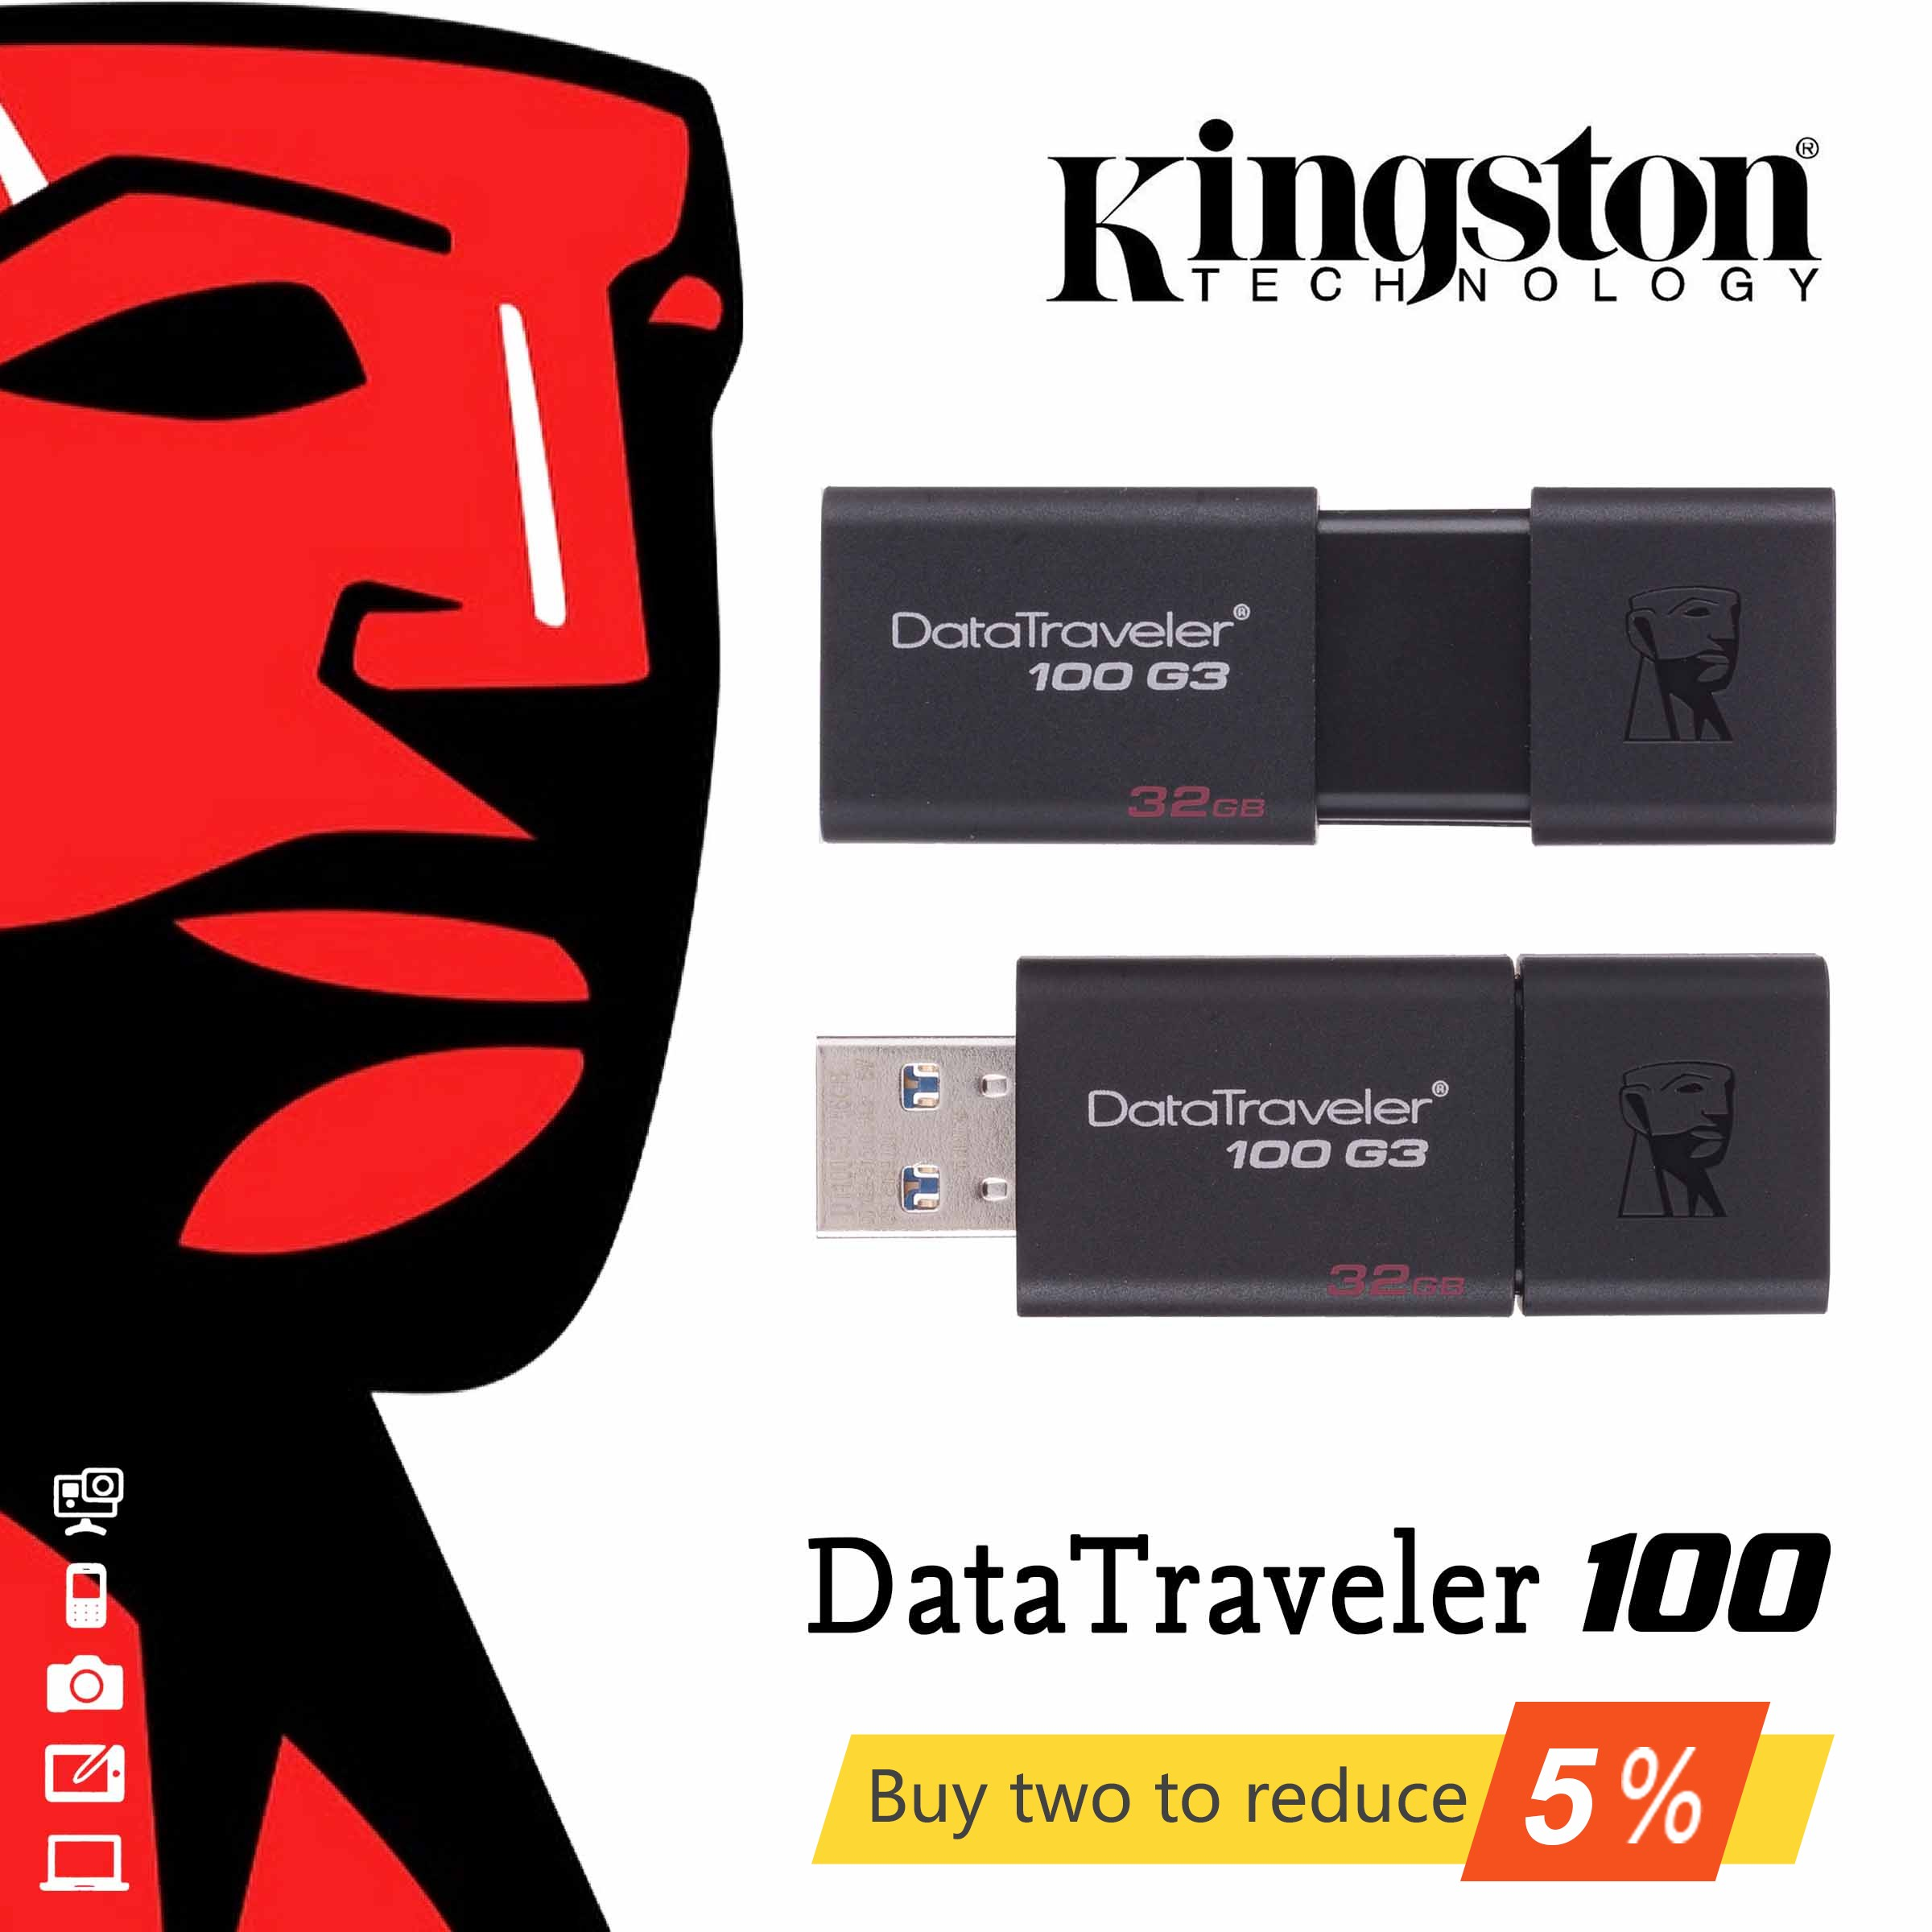 Original Kingston DataTraveler 100 G3 USB-Sticks 16GB <font><b>32GB</b></font> 64GB 128GB USB <font><b>3.0</b></font> Stift Stick hohe geschwindigkeit <font><b>PenDrives</b></font> DT 100 G3 image